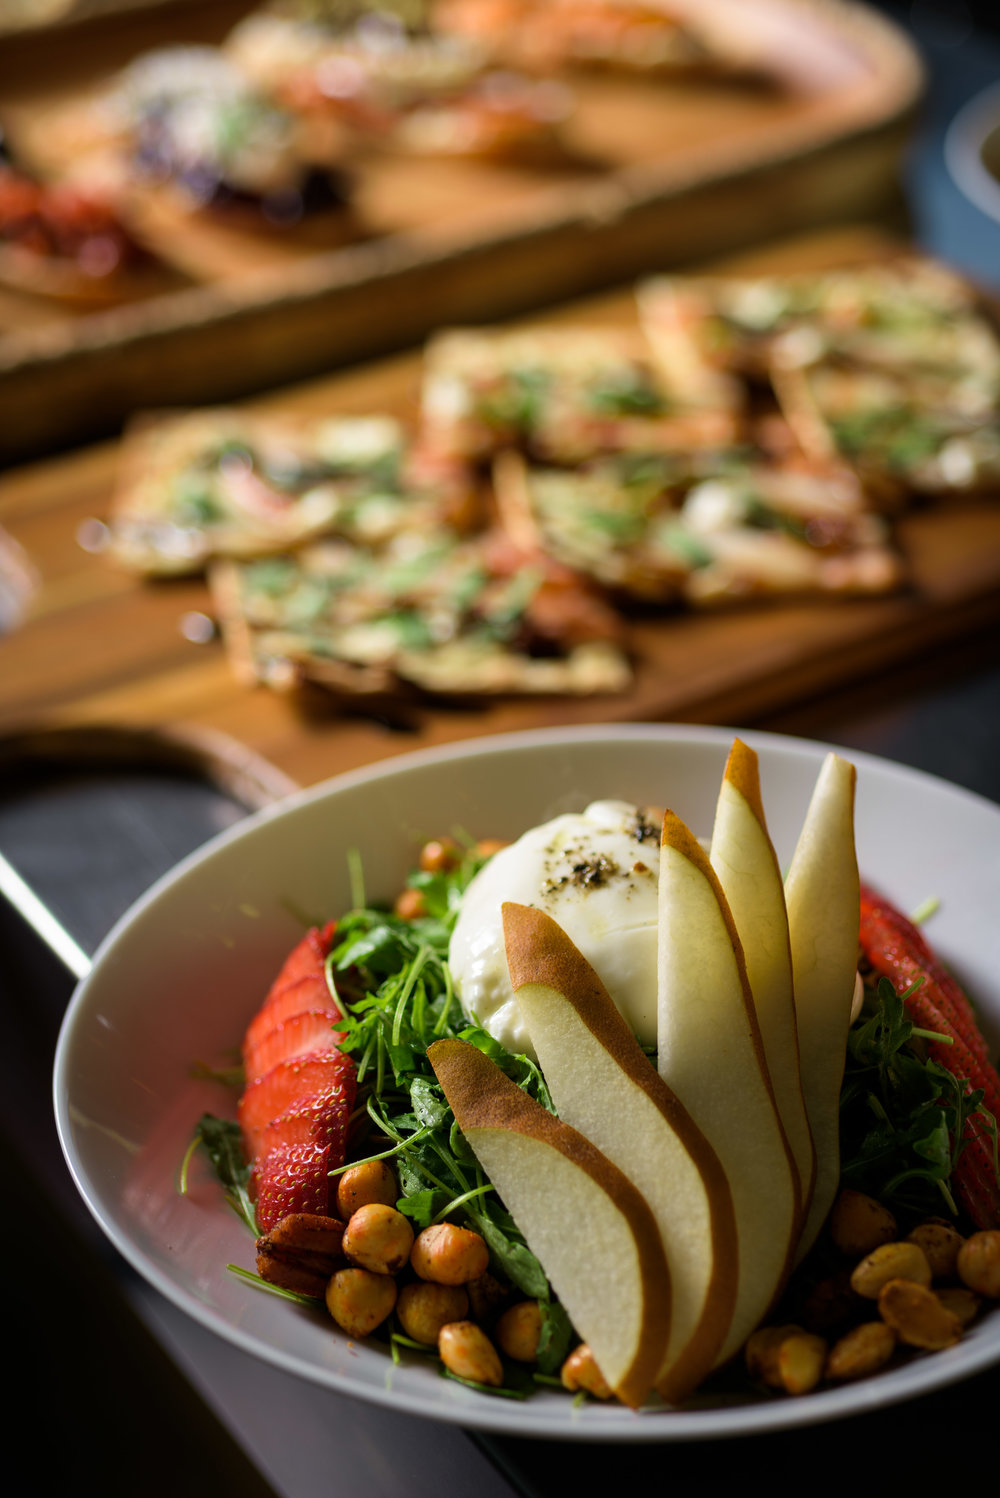 various salad and flatbread appetizers - Cupertino food photography - RootStock Wine Bar - photos by Bay Area commercial photographer Chris Schmauch